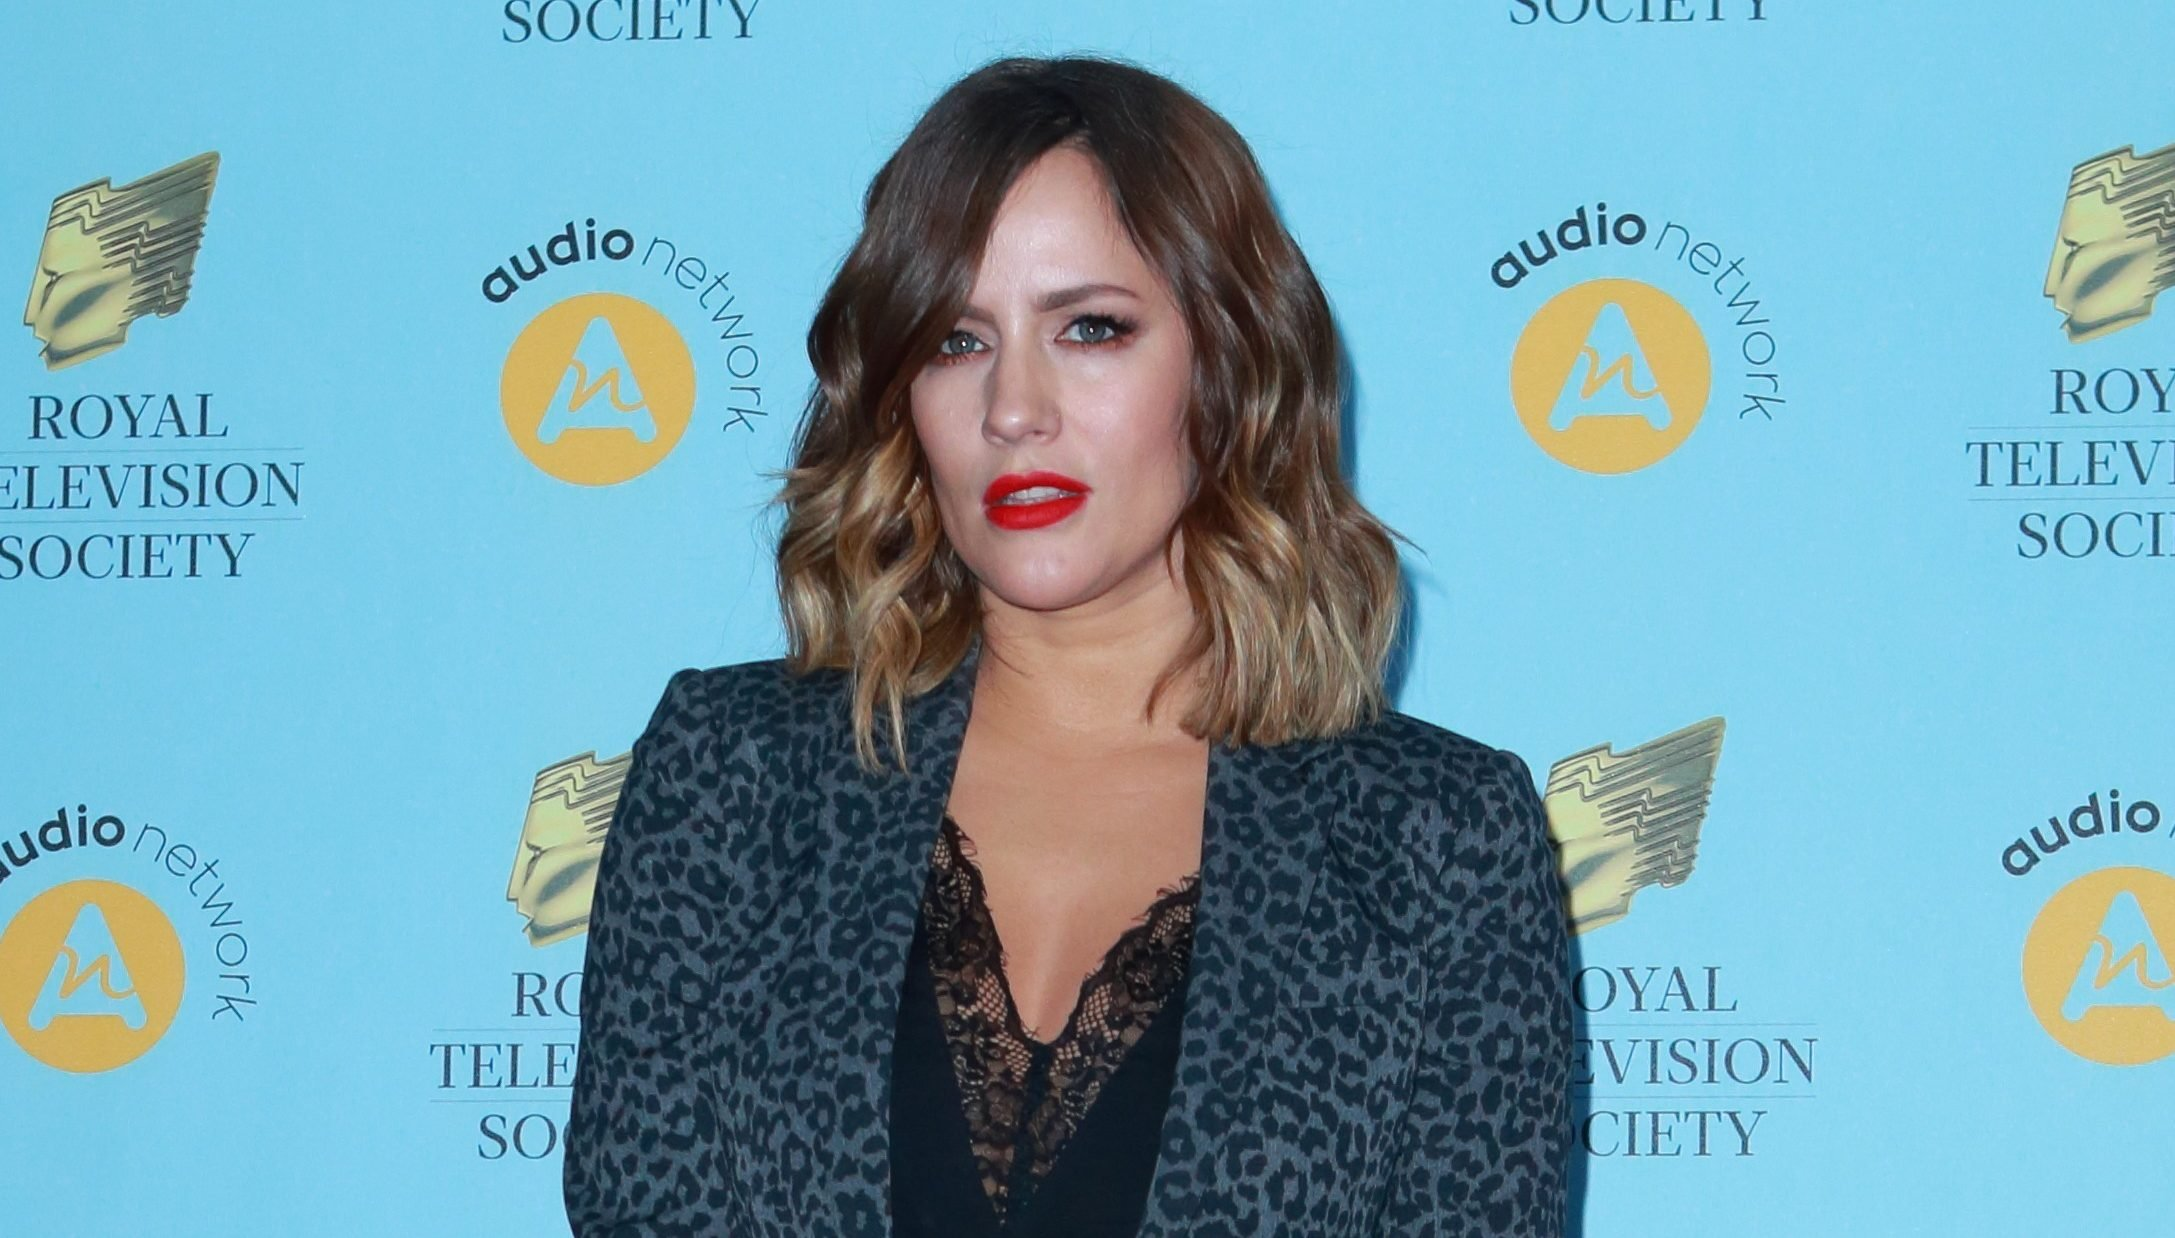 Caroline Flack hits back at speculation about split from fiancé Andrew Brady